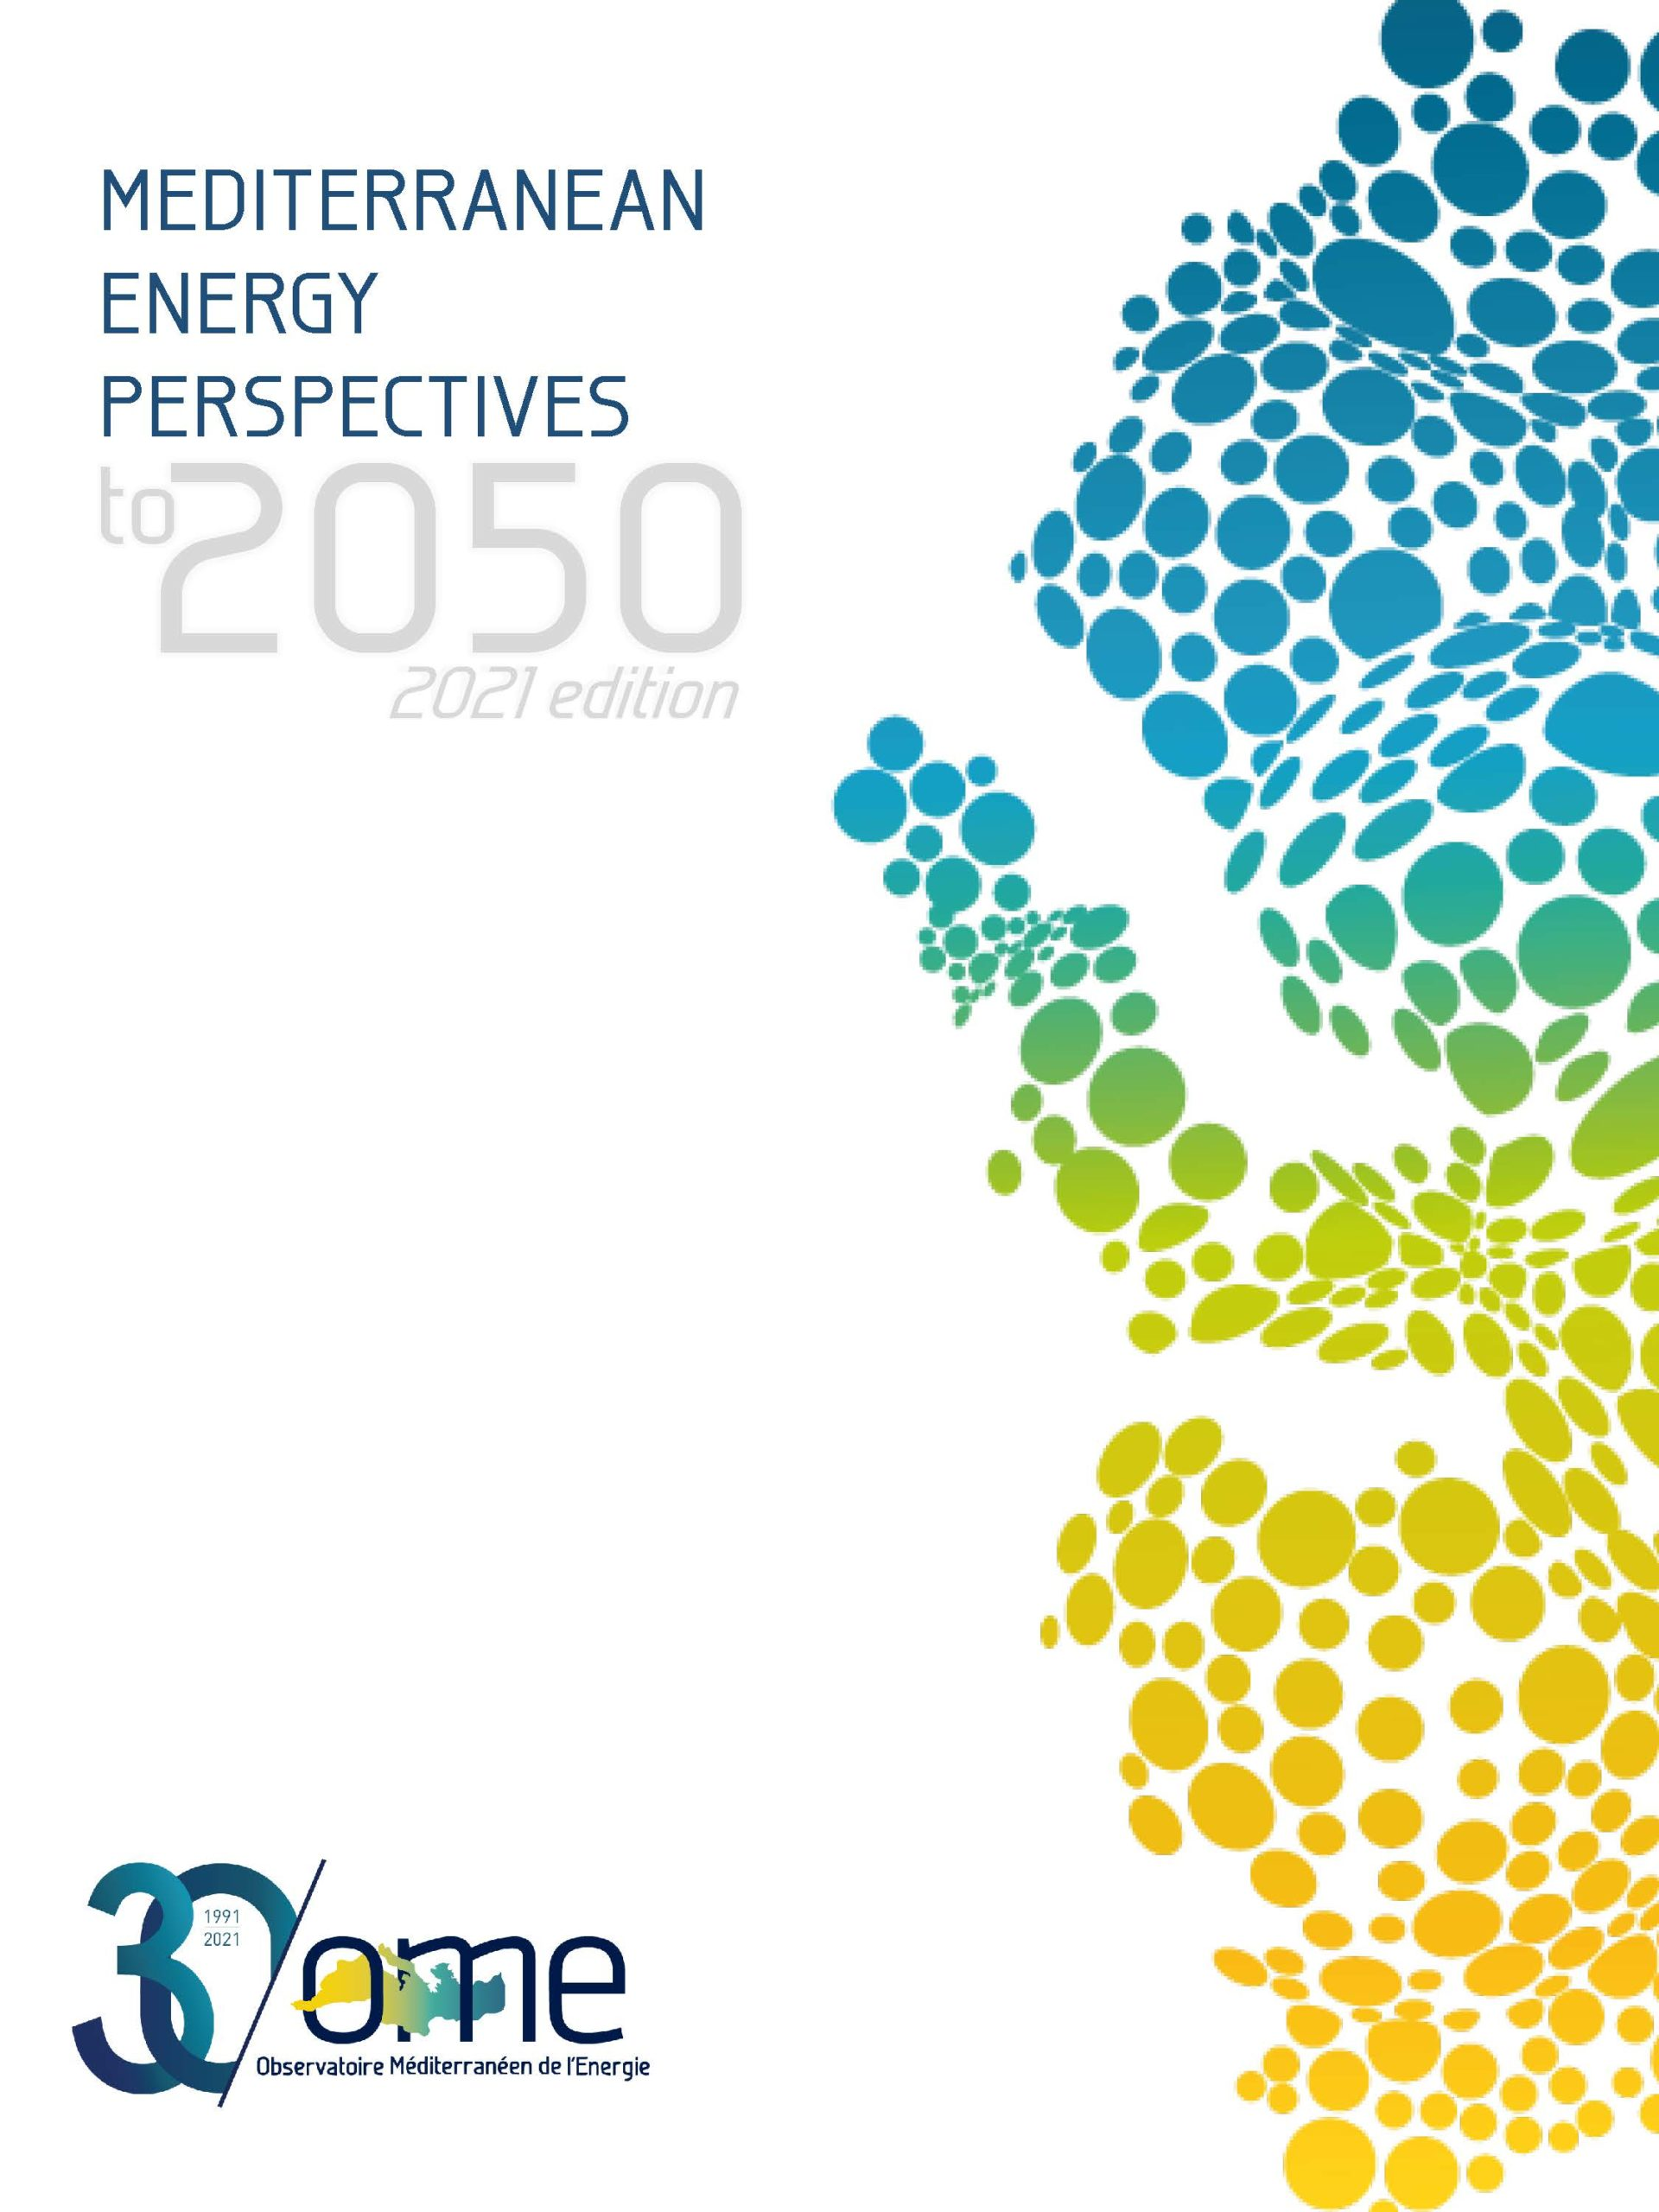 MEPto2050 – 2021 edition (to be released in June 2021)